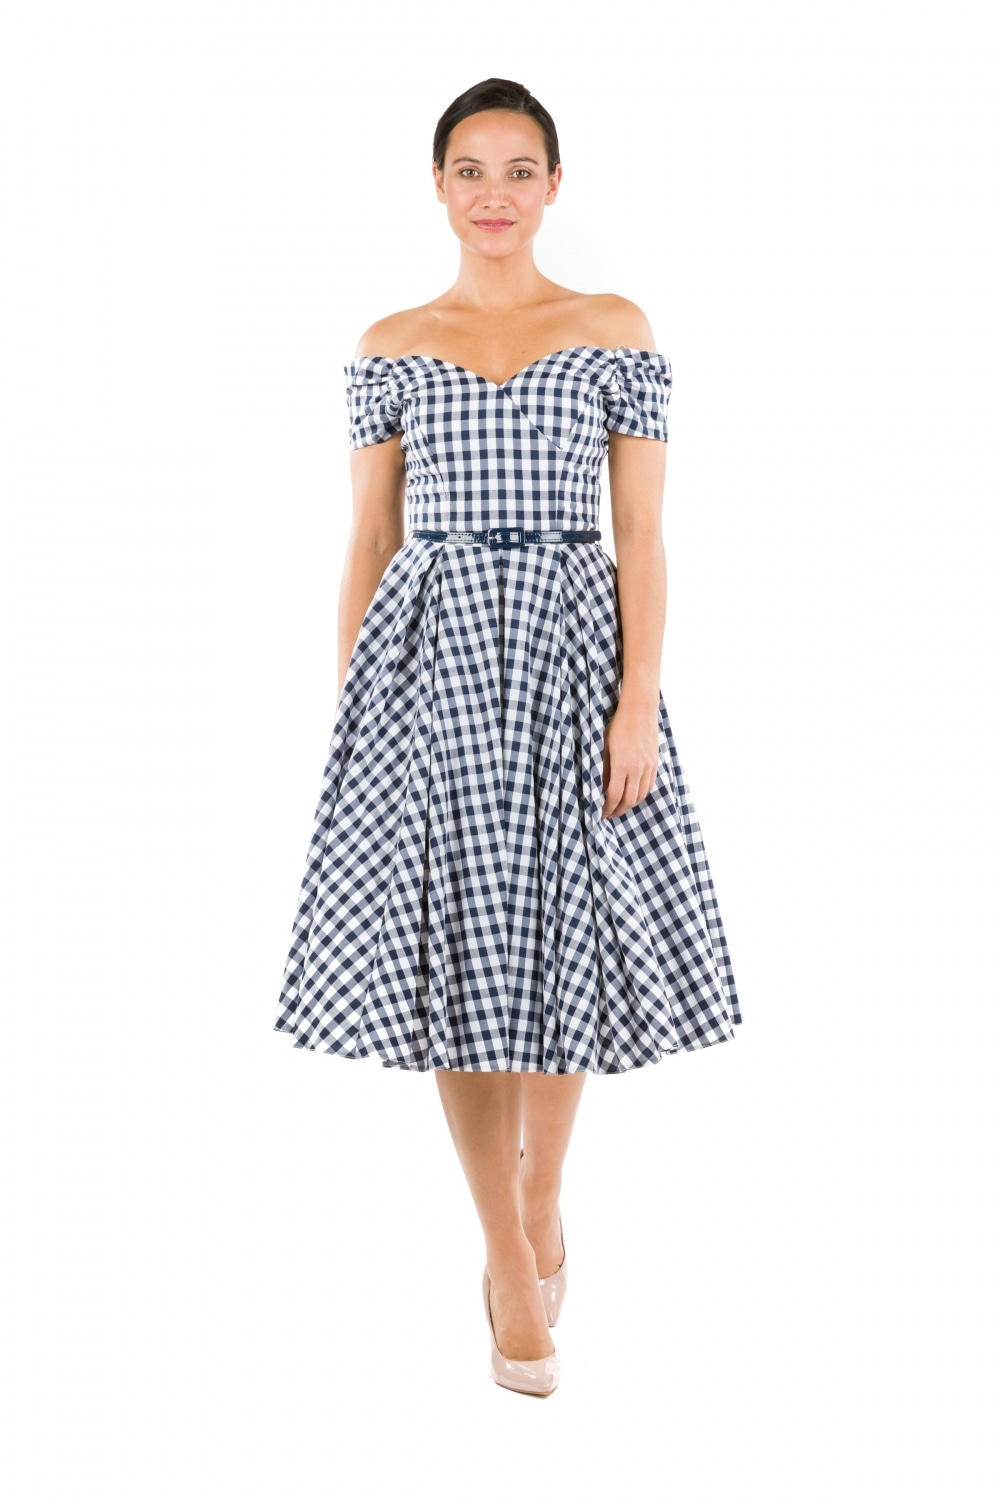 The Pretty Dress Company Navy and White Fatale Gingham Prom Dress